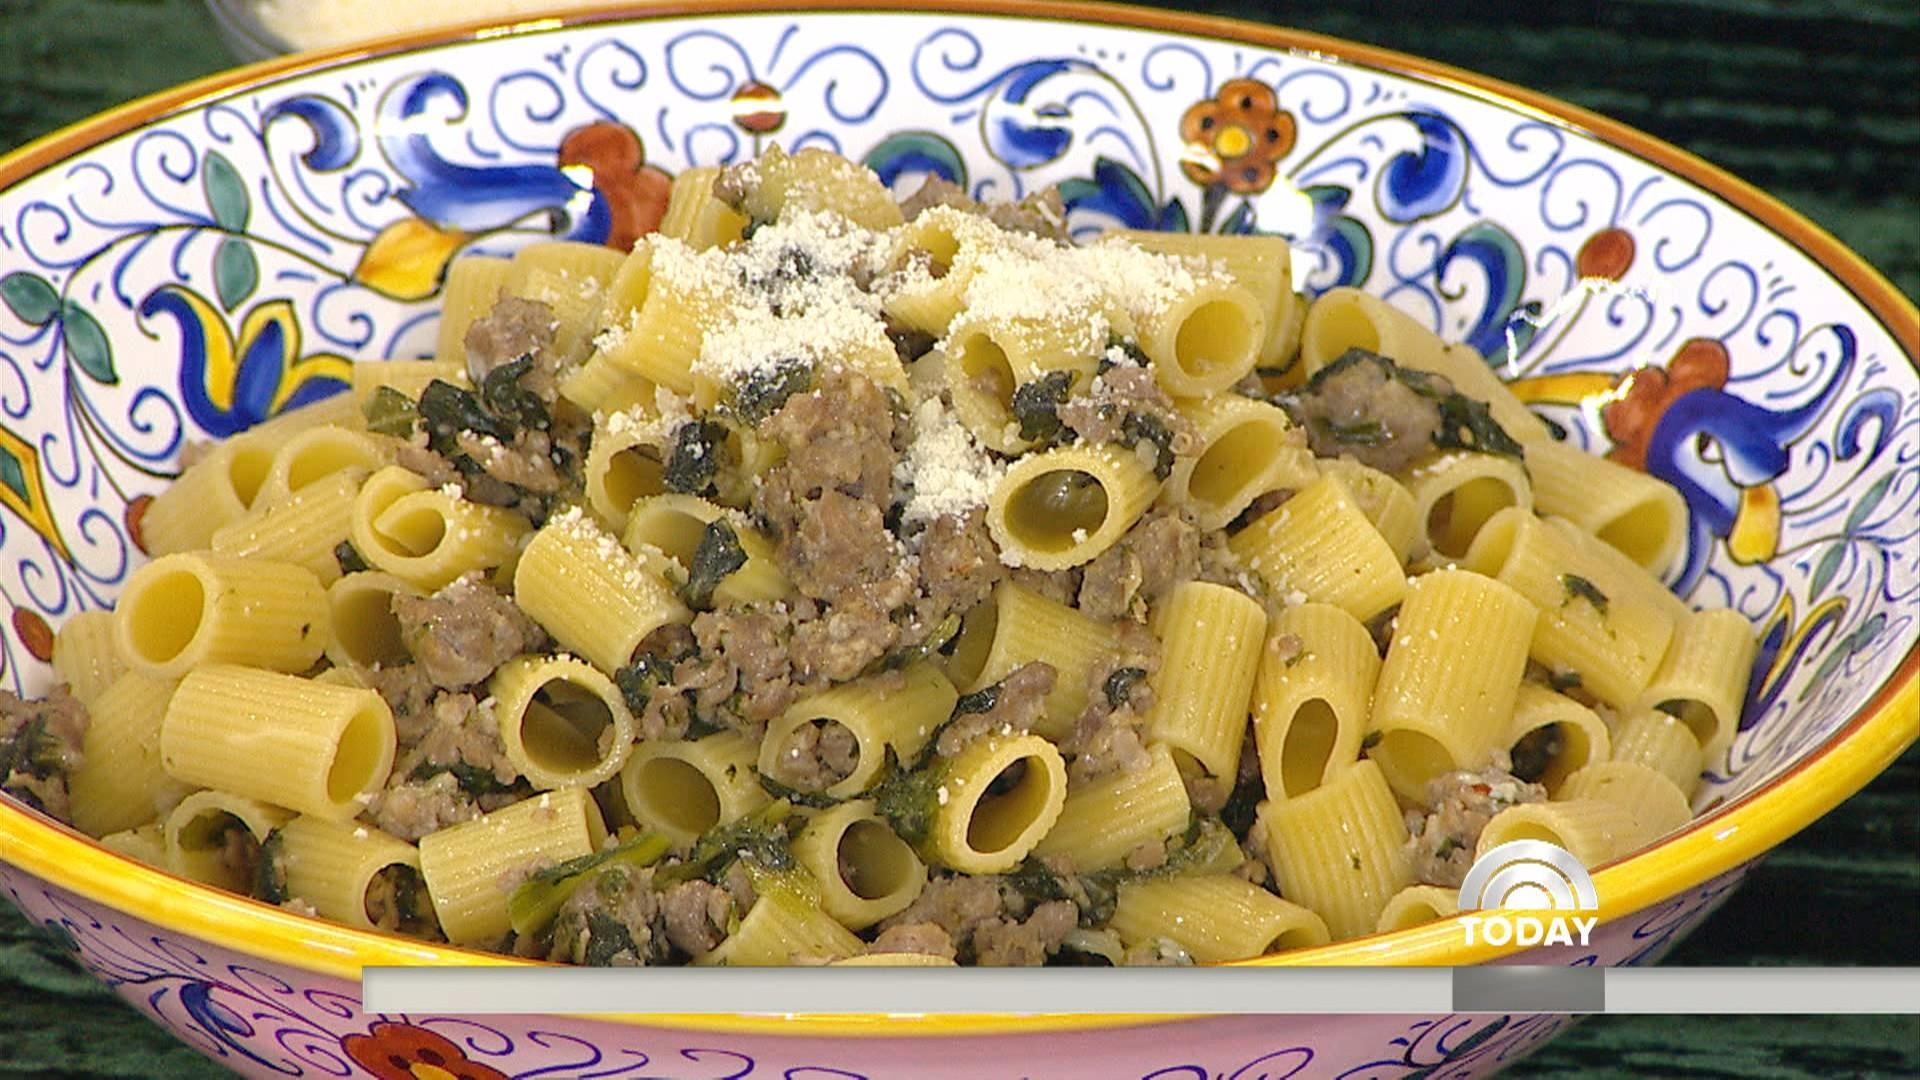 Meaty pasta, wintry salad, sparkling drinks: Make Lidia Bastianich's Christmas dinner